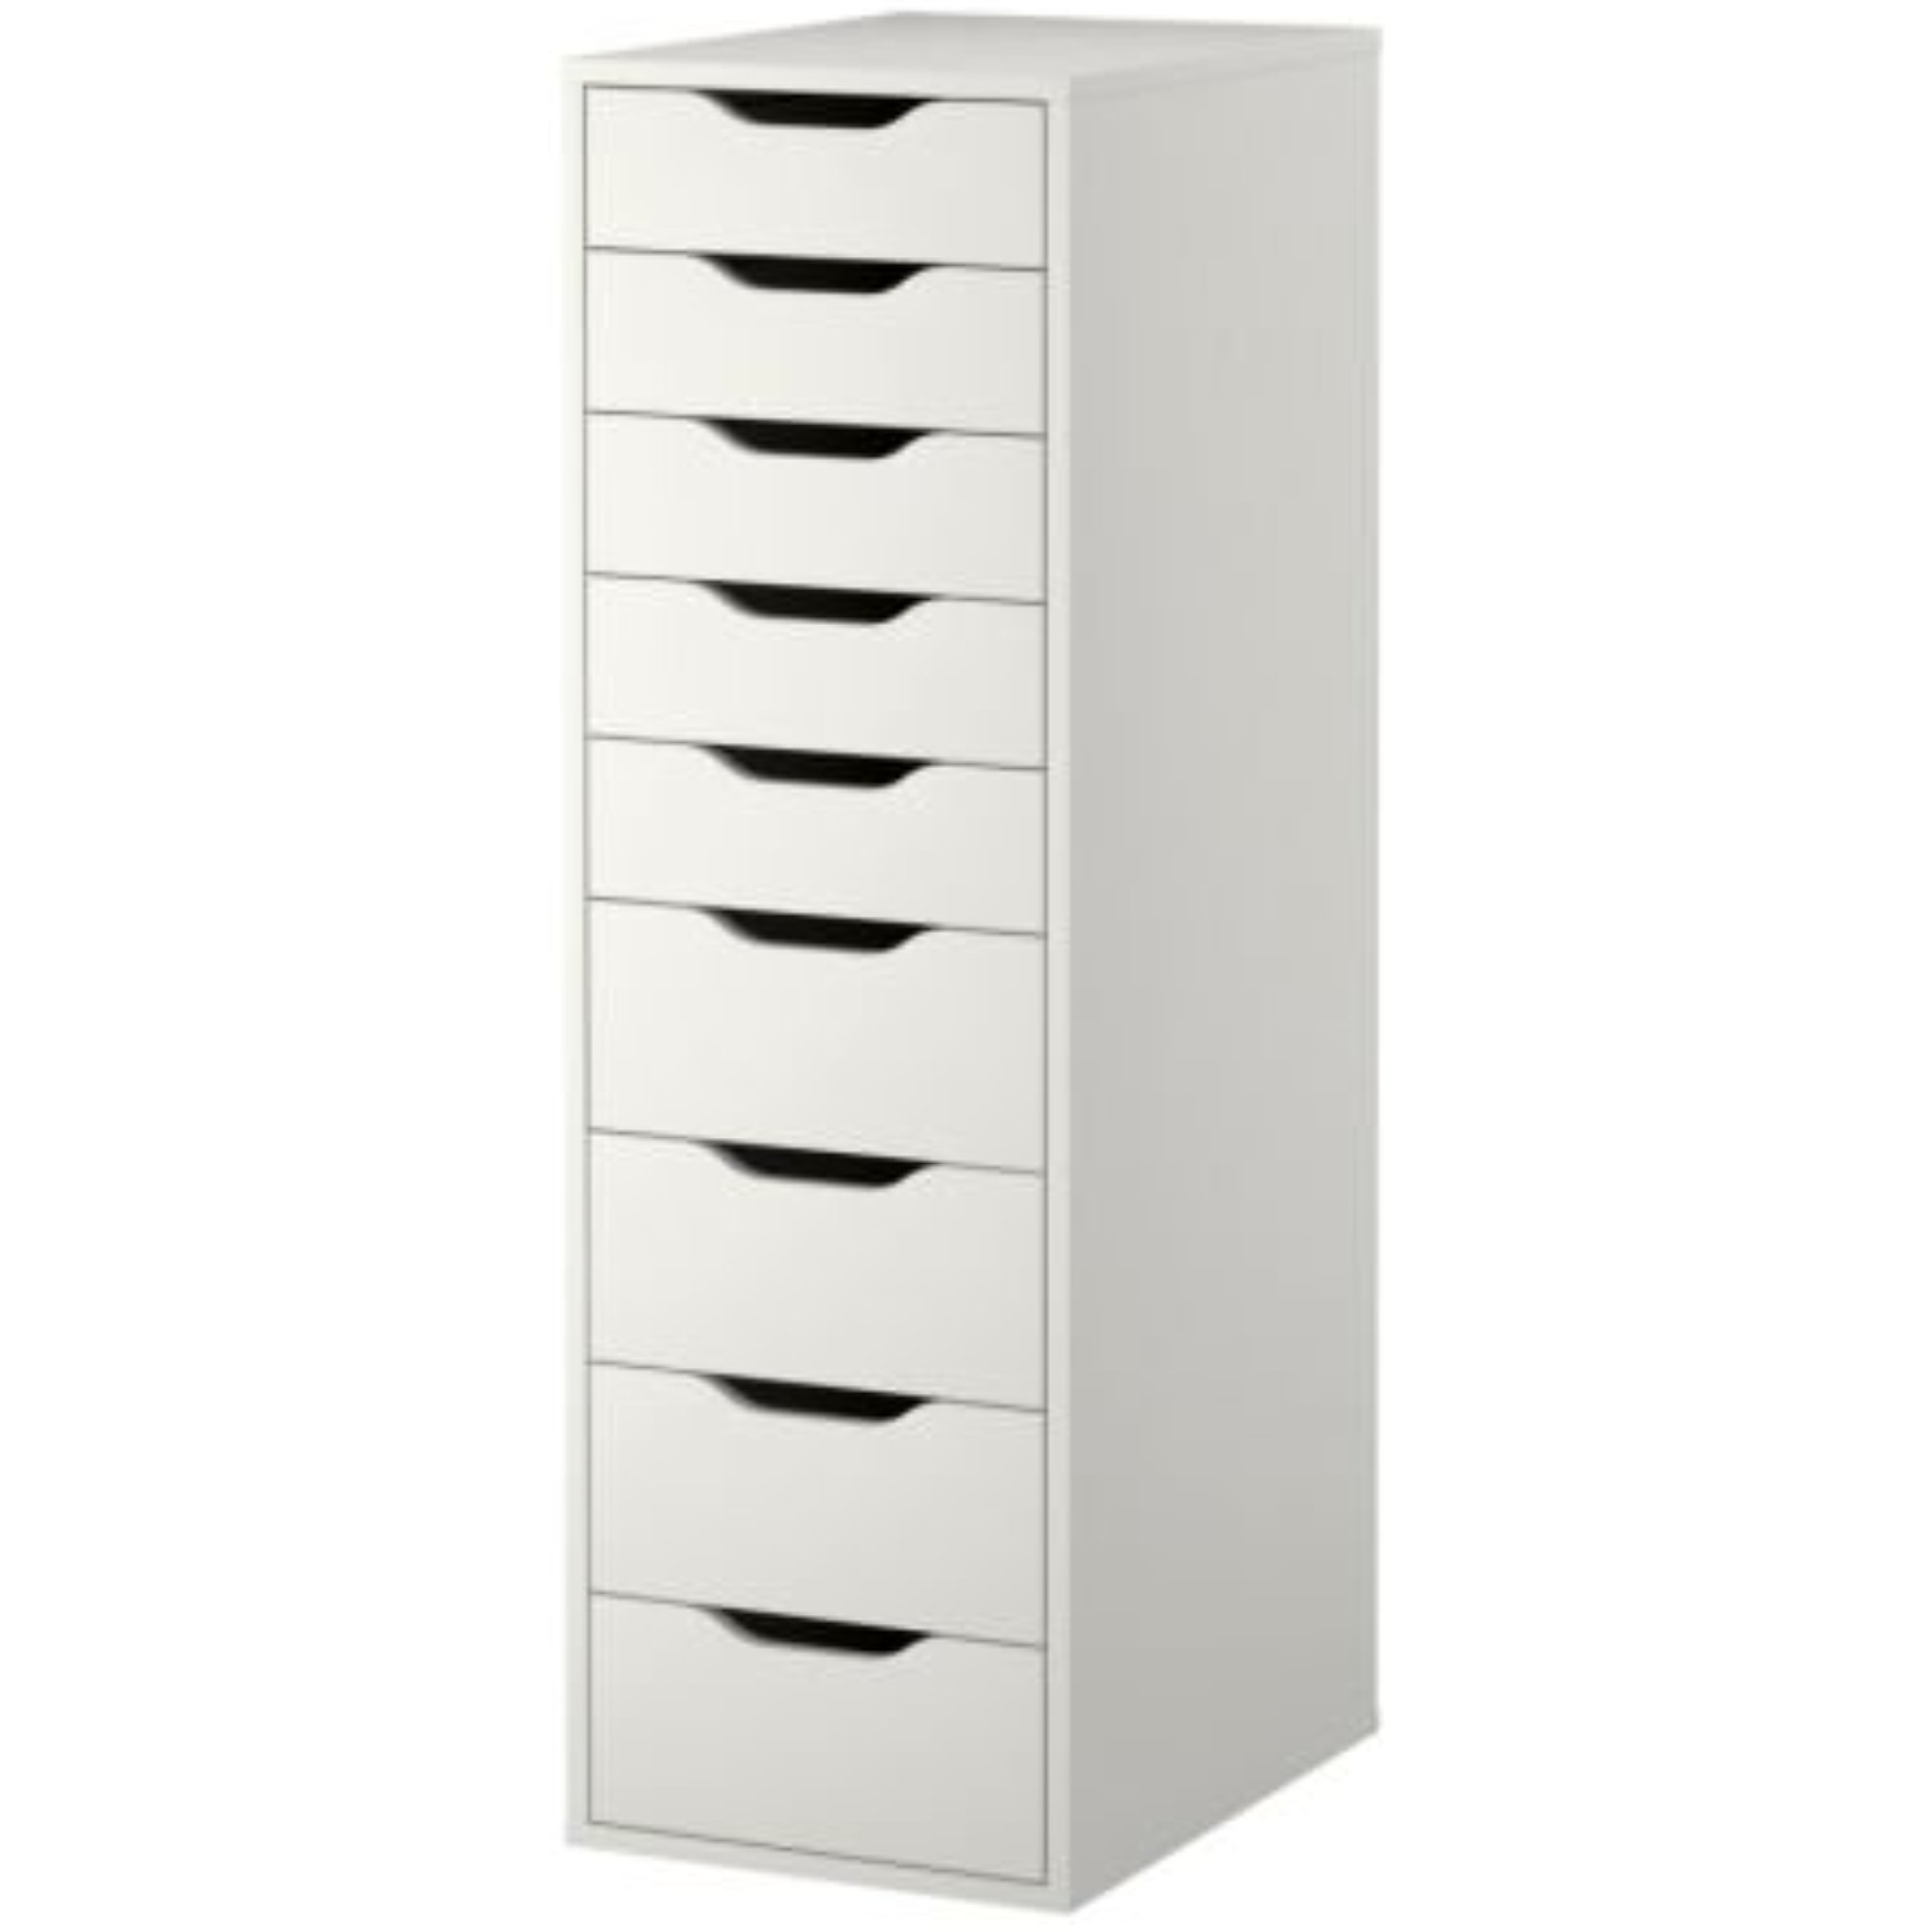 Ikea Drawer Unit with 9 Drawers White ALEX 501.928.22  sc 1 st  Walmart & Ikea Drawer Unit with 9 Drawers White ALEX 501.928.22 - Walmart.com